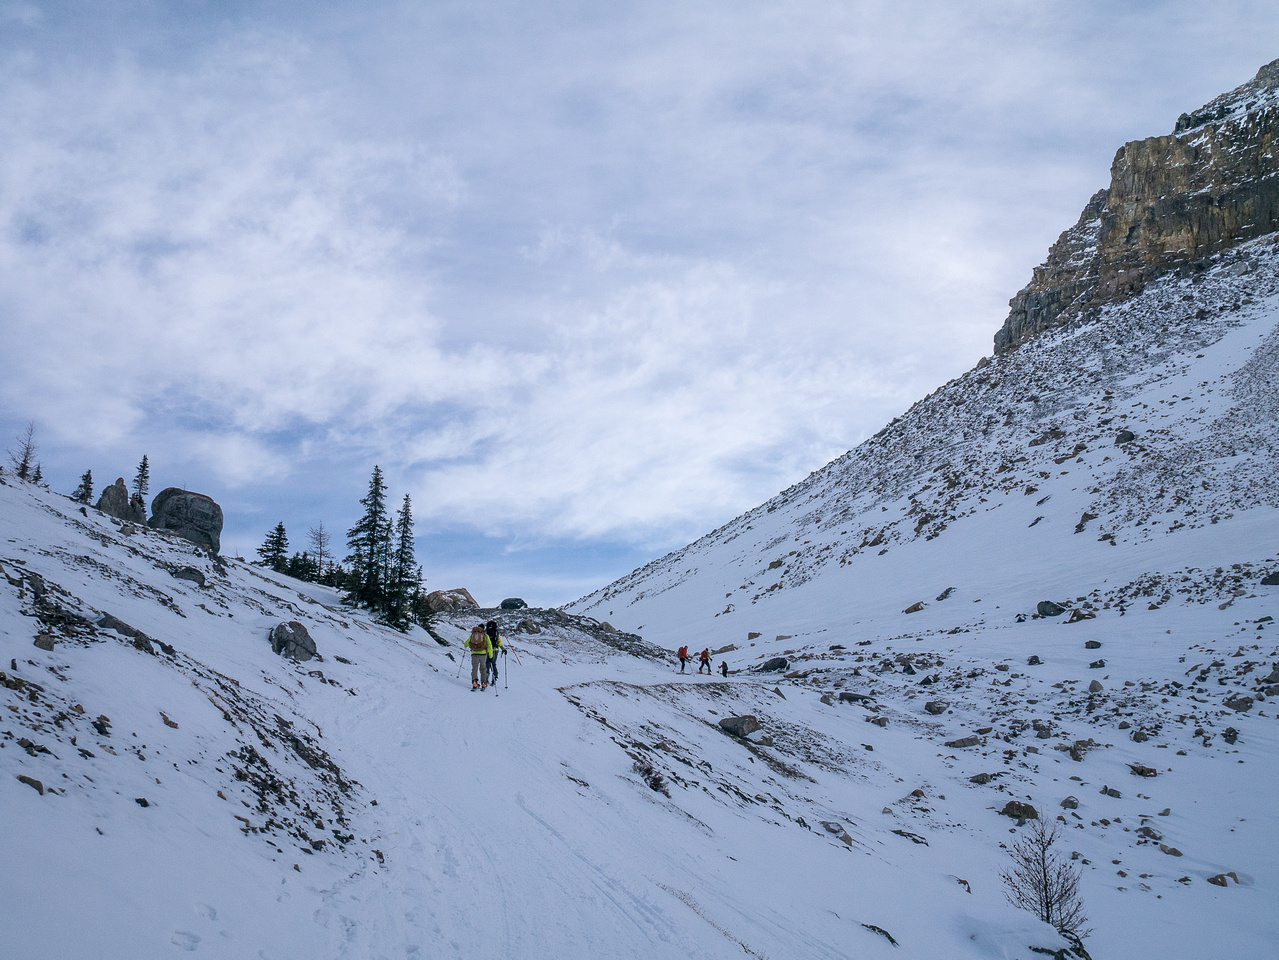 Following the snowmobile track from Skoki Lodge up to Boulder Pass.